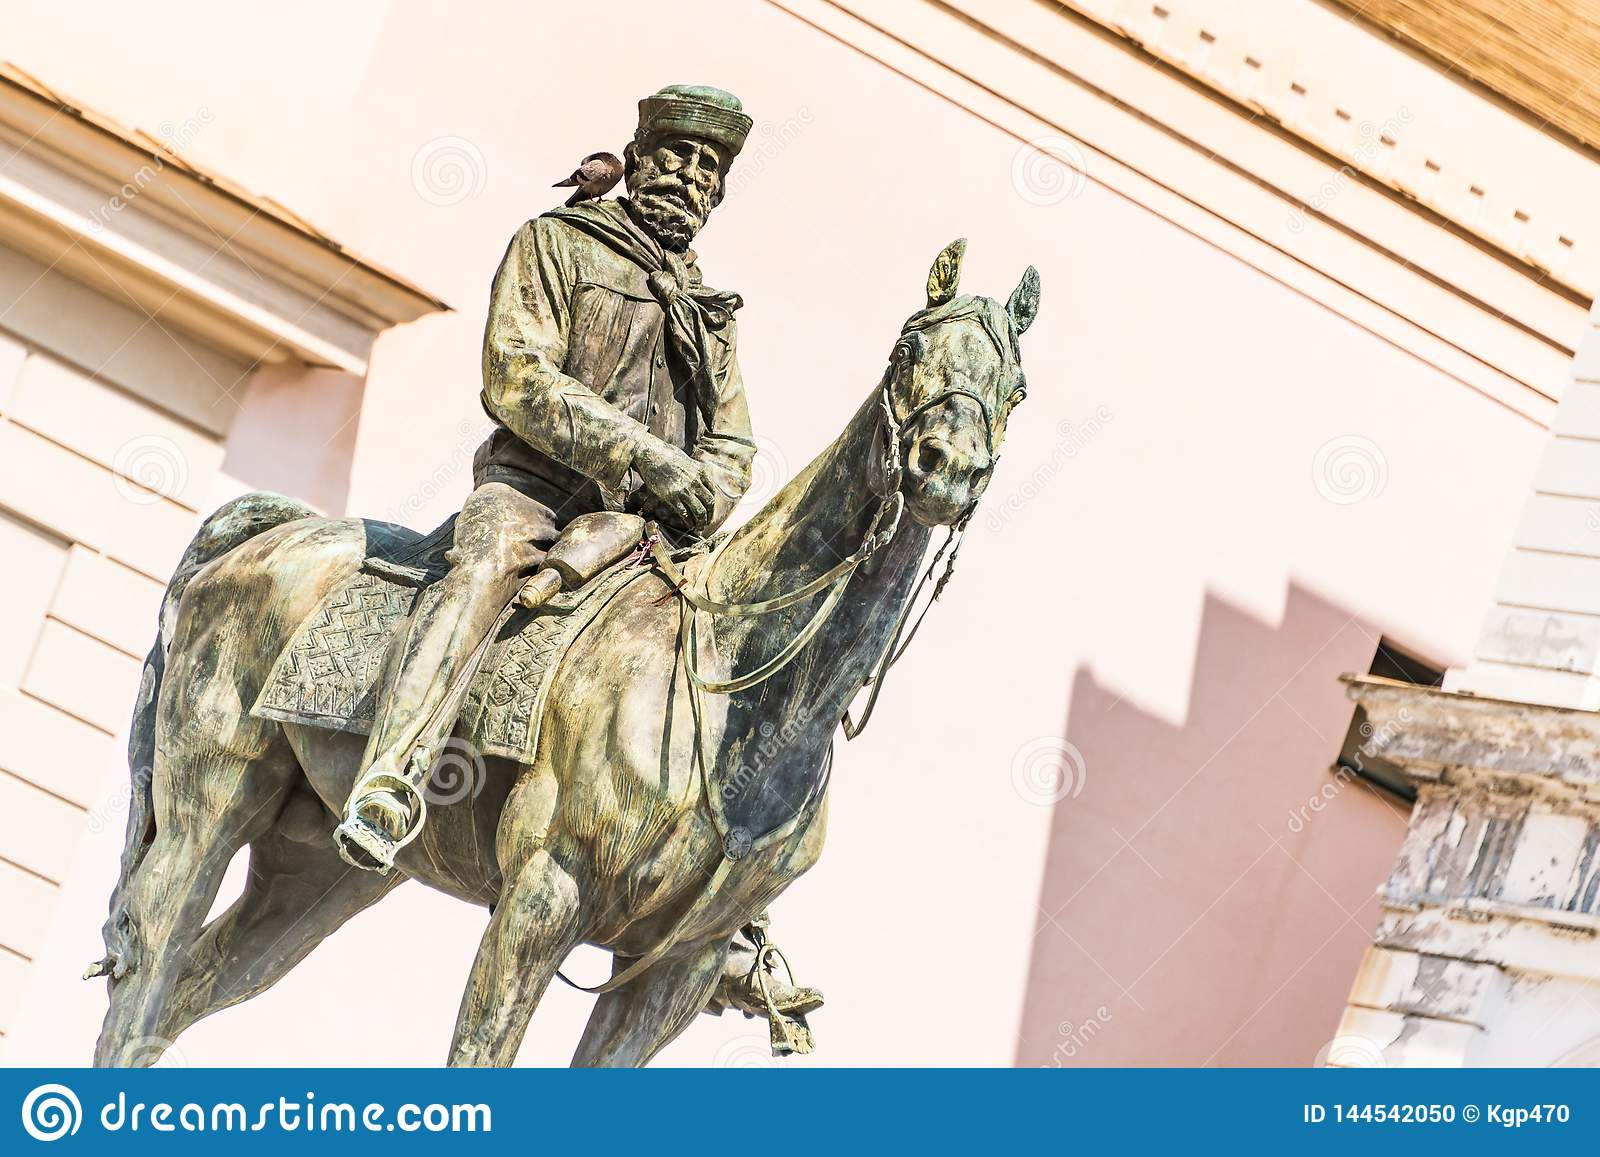 The statue of Giuseppe Garibaldi on horse, Genoa Piazza de Ferrari, in the centre of Genoa, Liguria, Italy [t